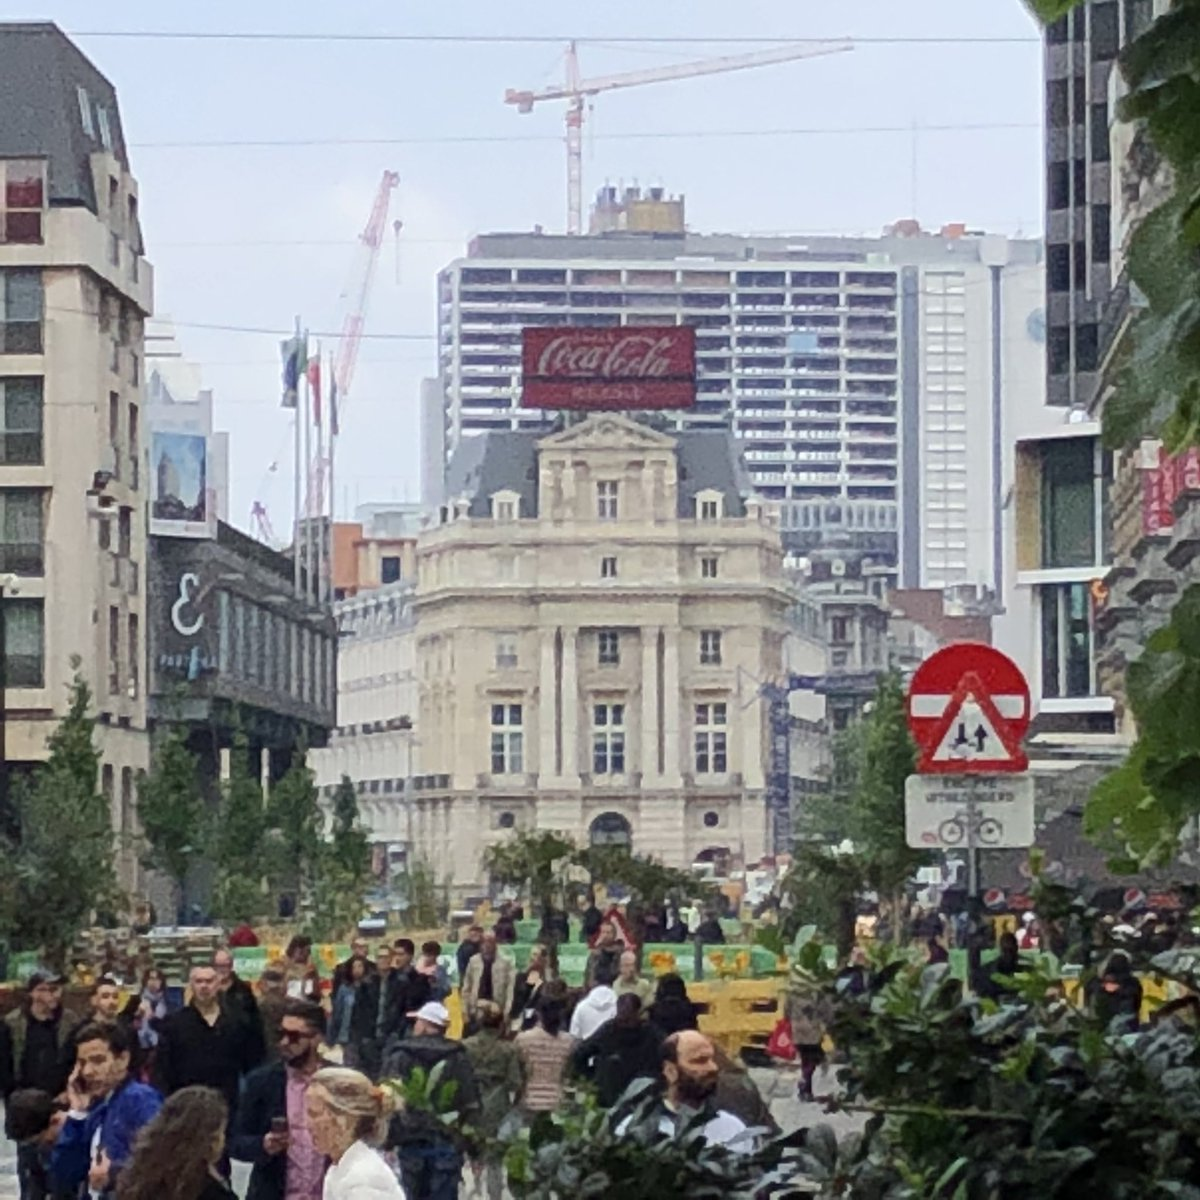 Downtown #Brussels today was a party. So fun! #gayprideday #citypic #Belgiumpic.twitter.com/lUHU4SUWqA